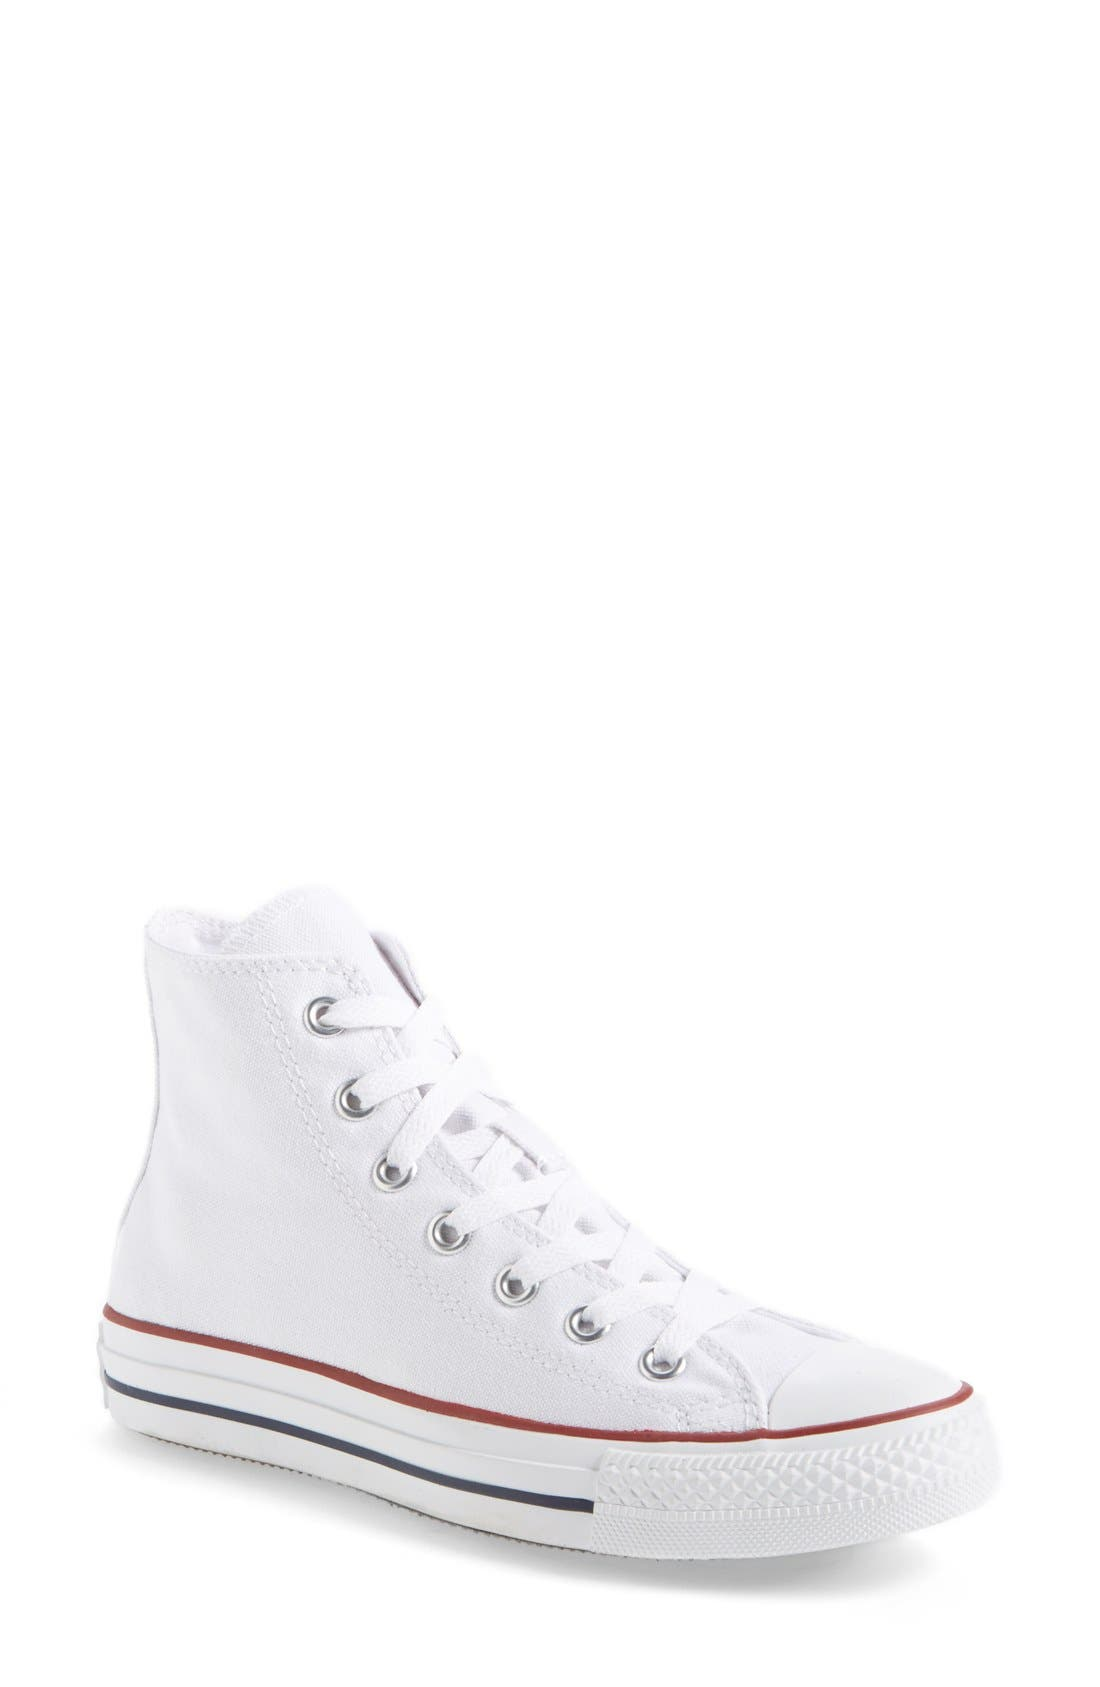 converse shoes high tops white. converse chuck taylor® high top sneaker (women) shoes tops white 0